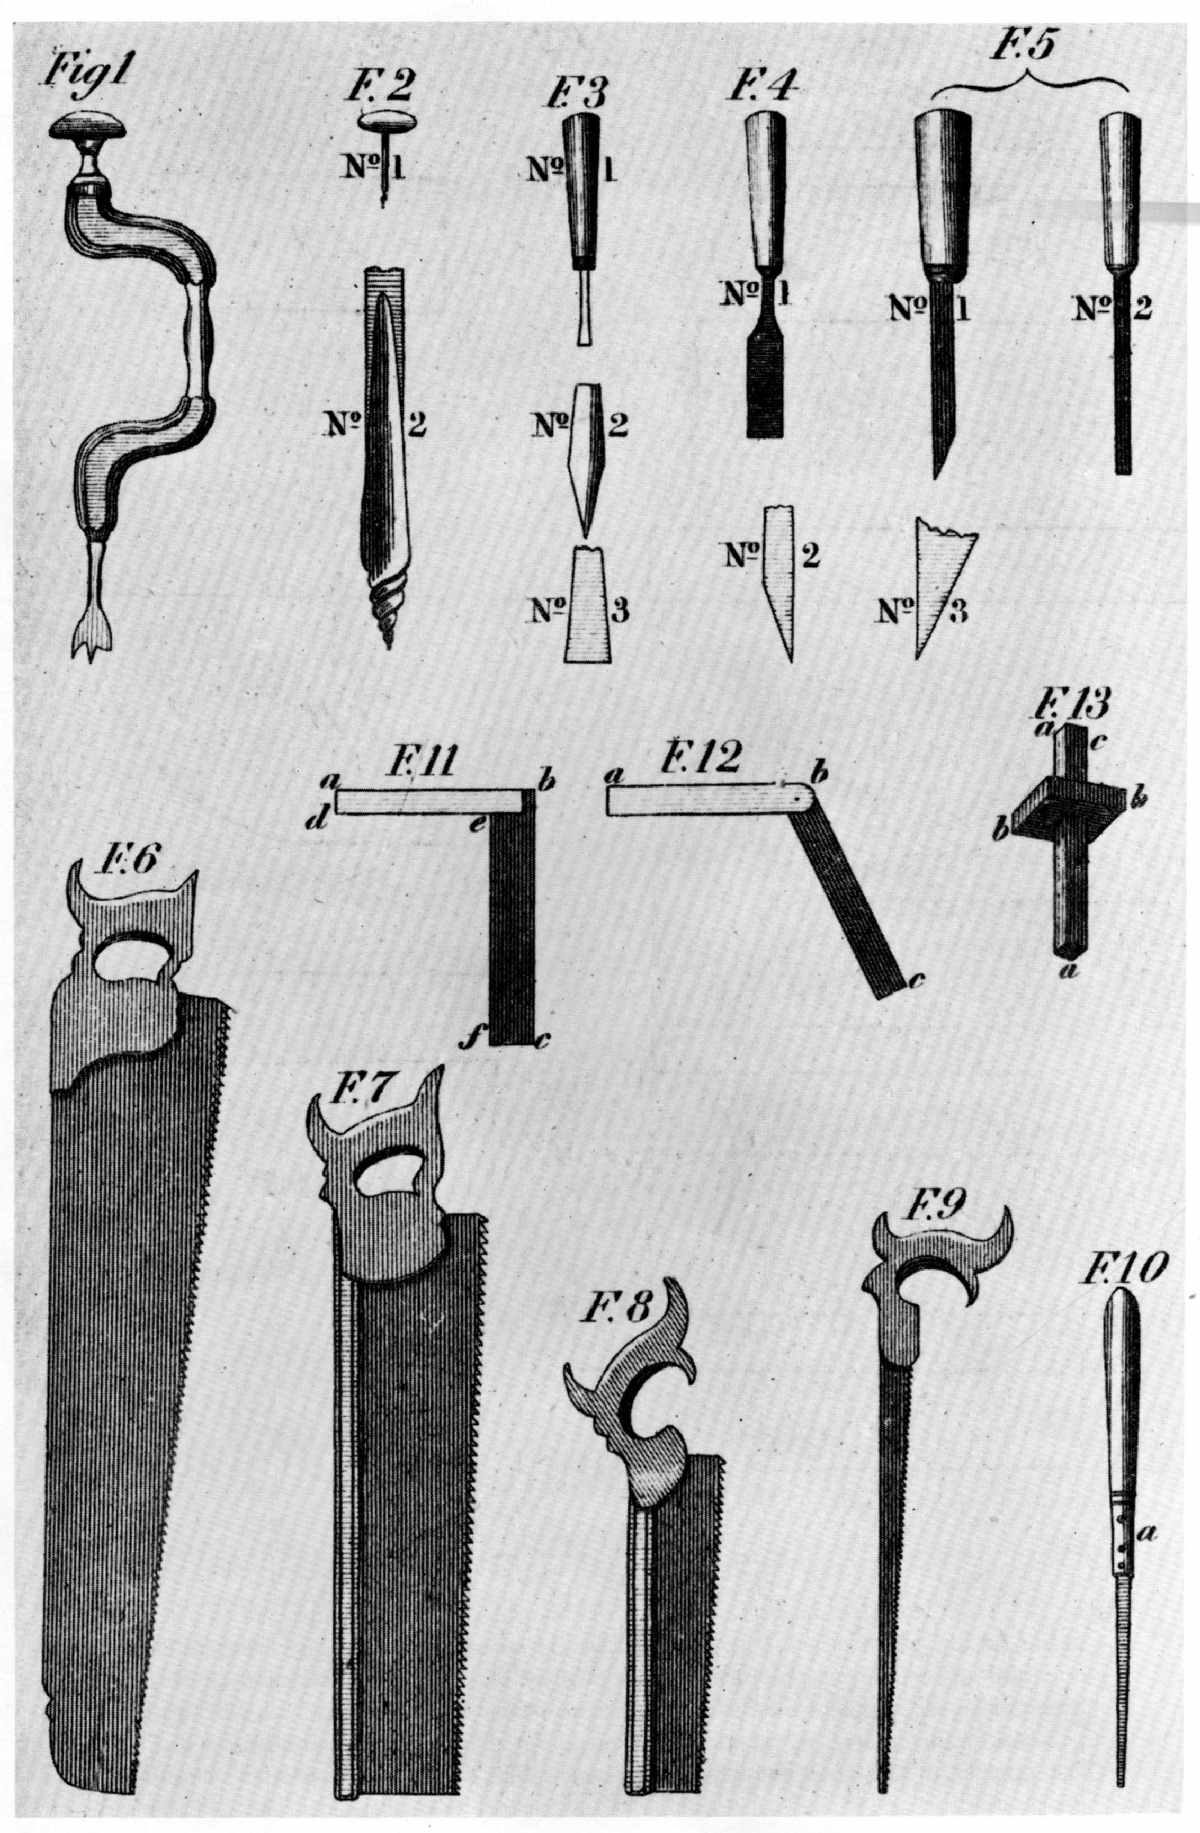 ... Timber Frame Tools » Specialization of Woodworking Tools 1600-1900